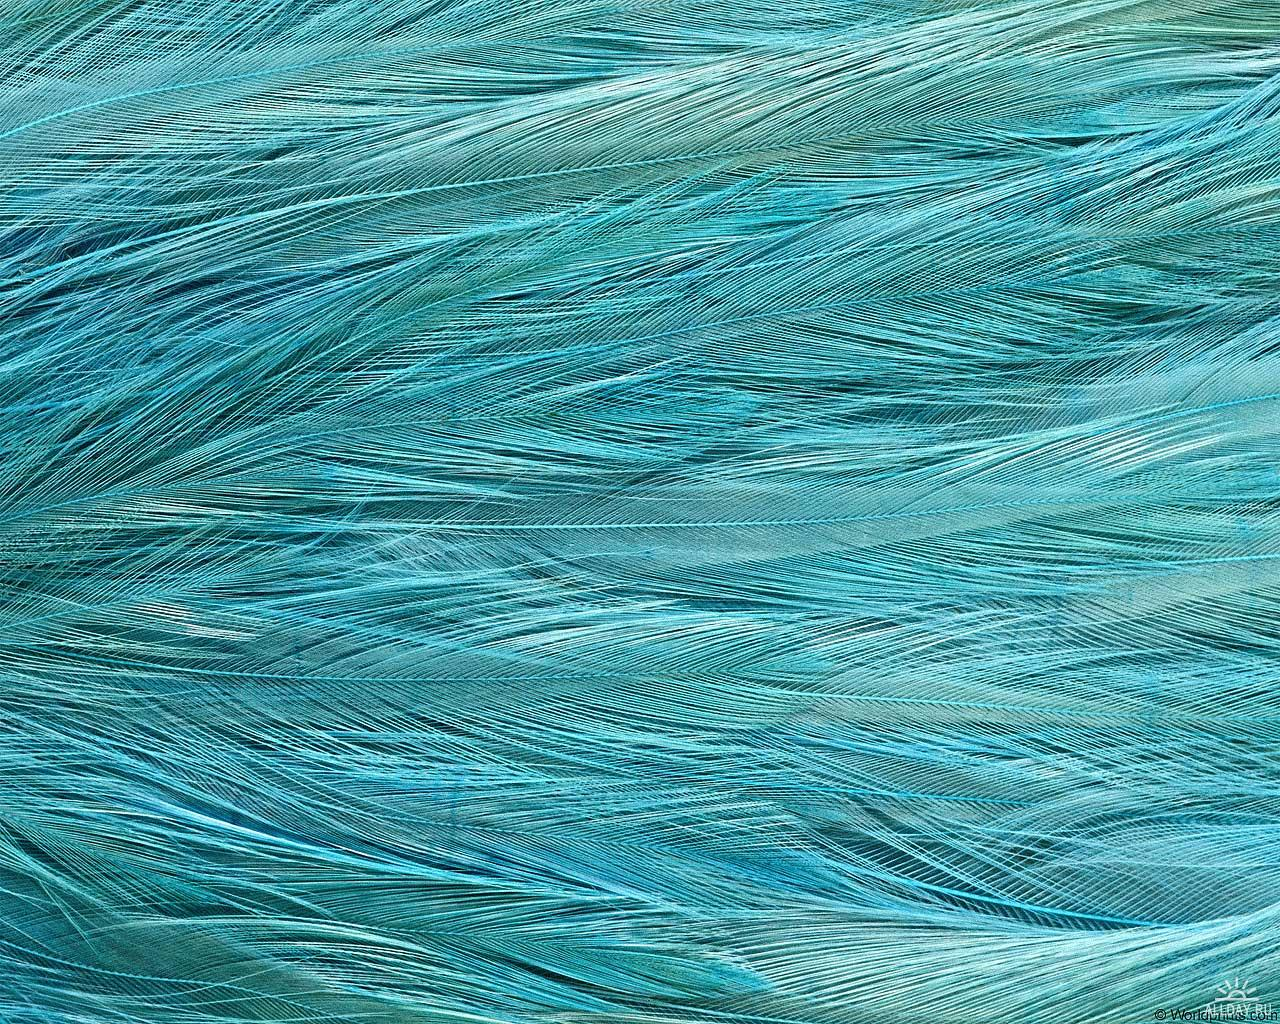 blue , texture feather, download background, photo, image, blue feather background texture